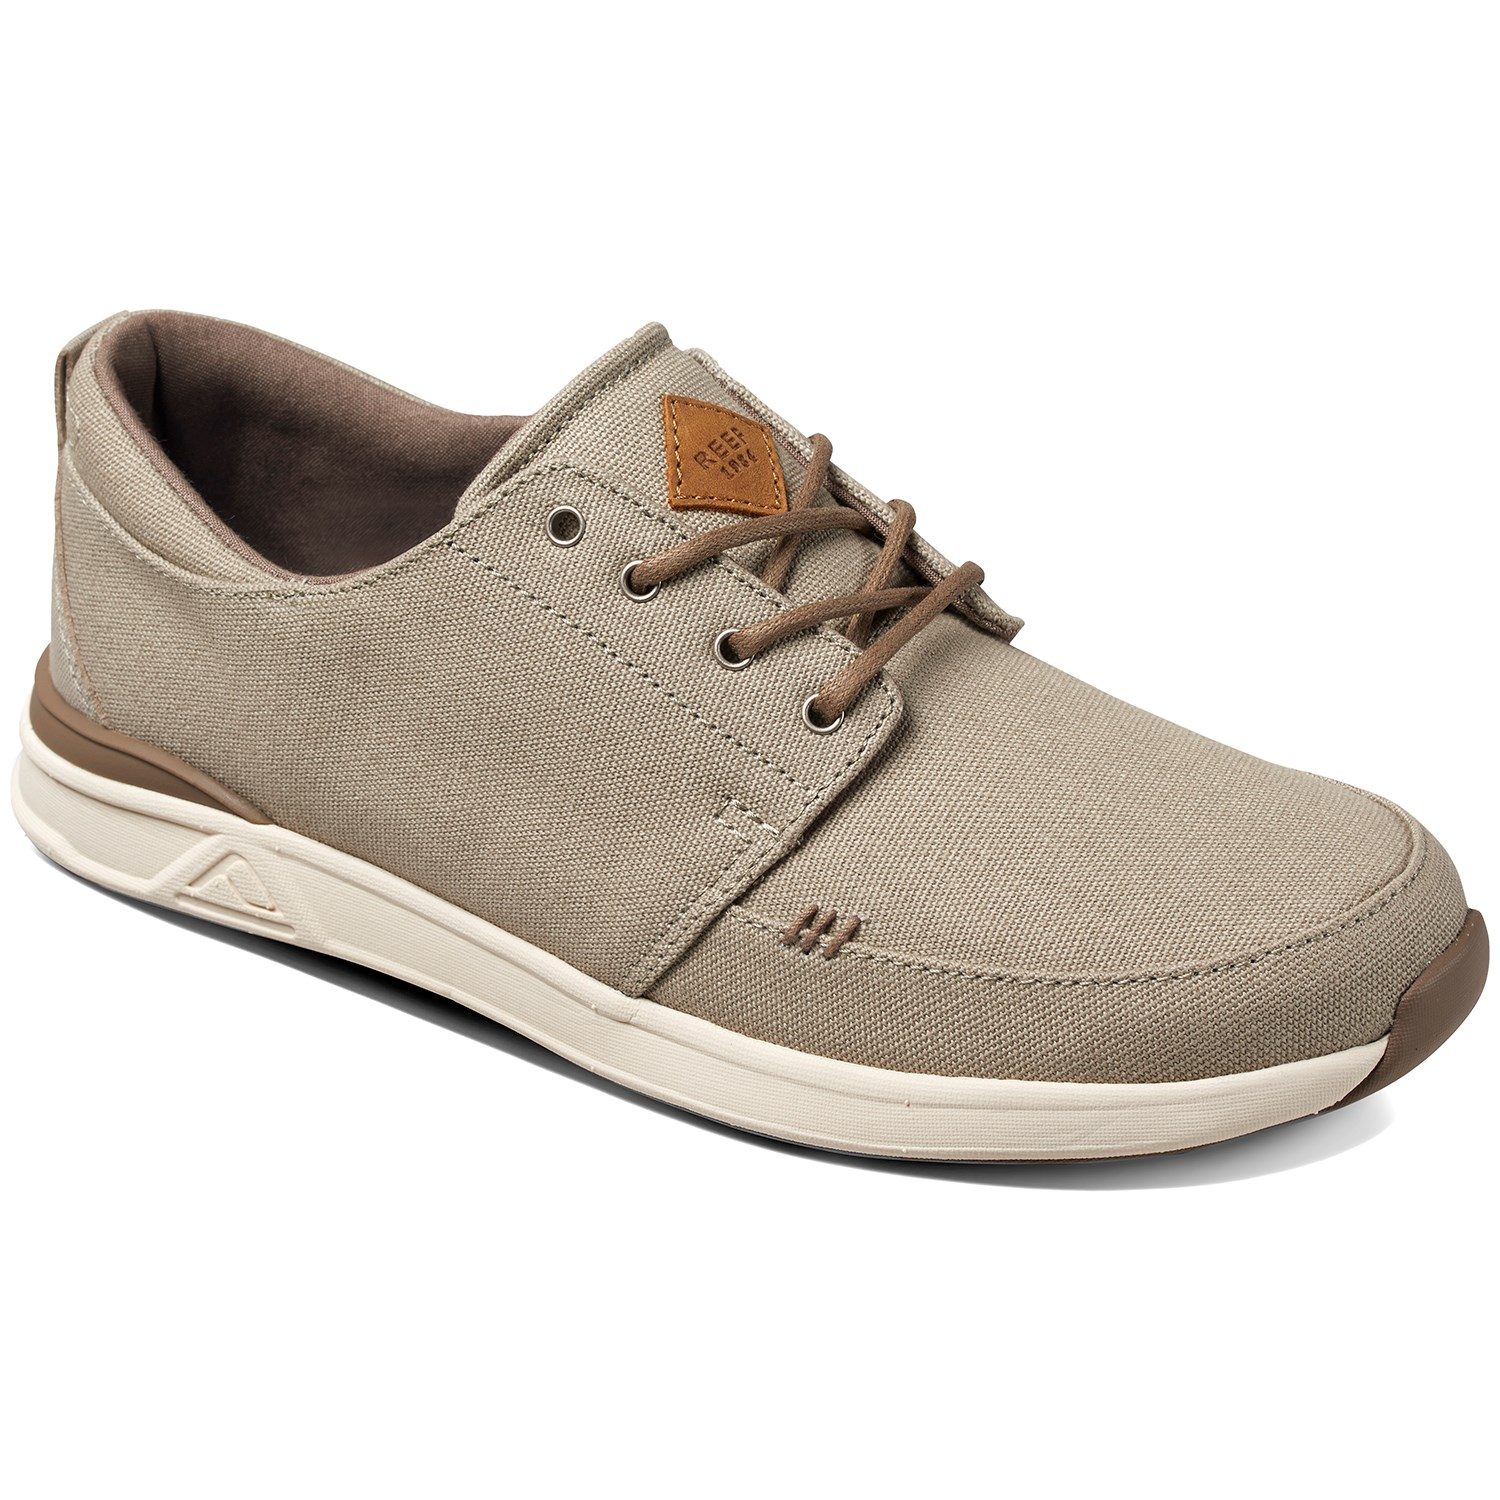 reef shoes reef rover low shoes | evo zbyhboz